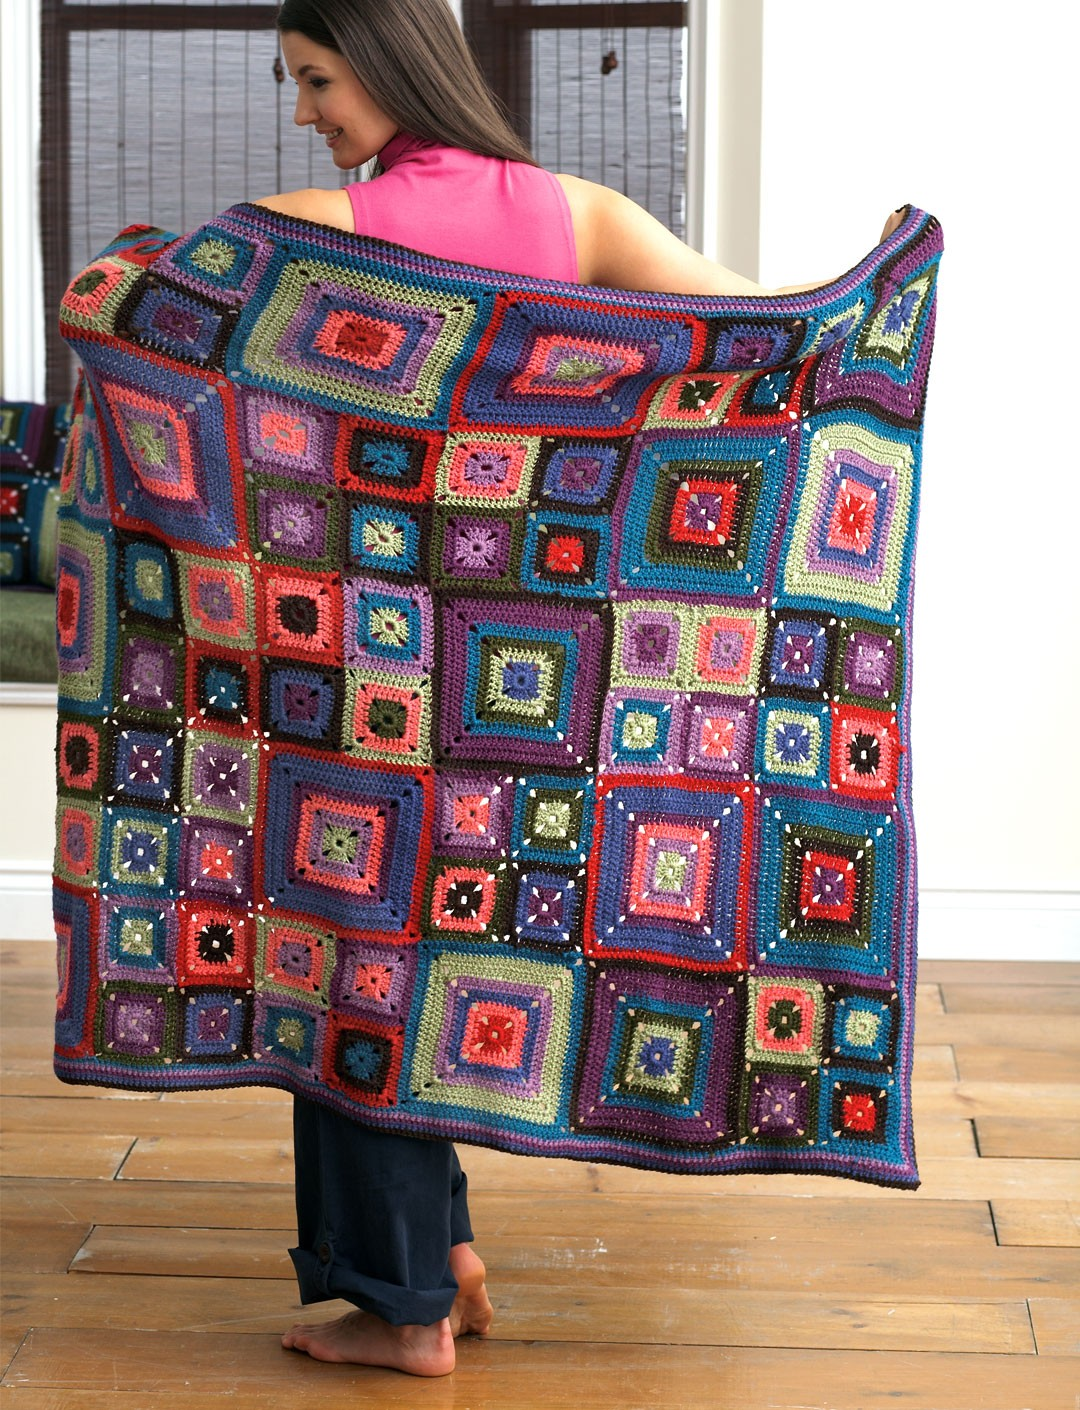 Nantucket Afghan Knitting Pattern : Patons Bright Squares Blanket and Pillow, Crochet Pattern ...